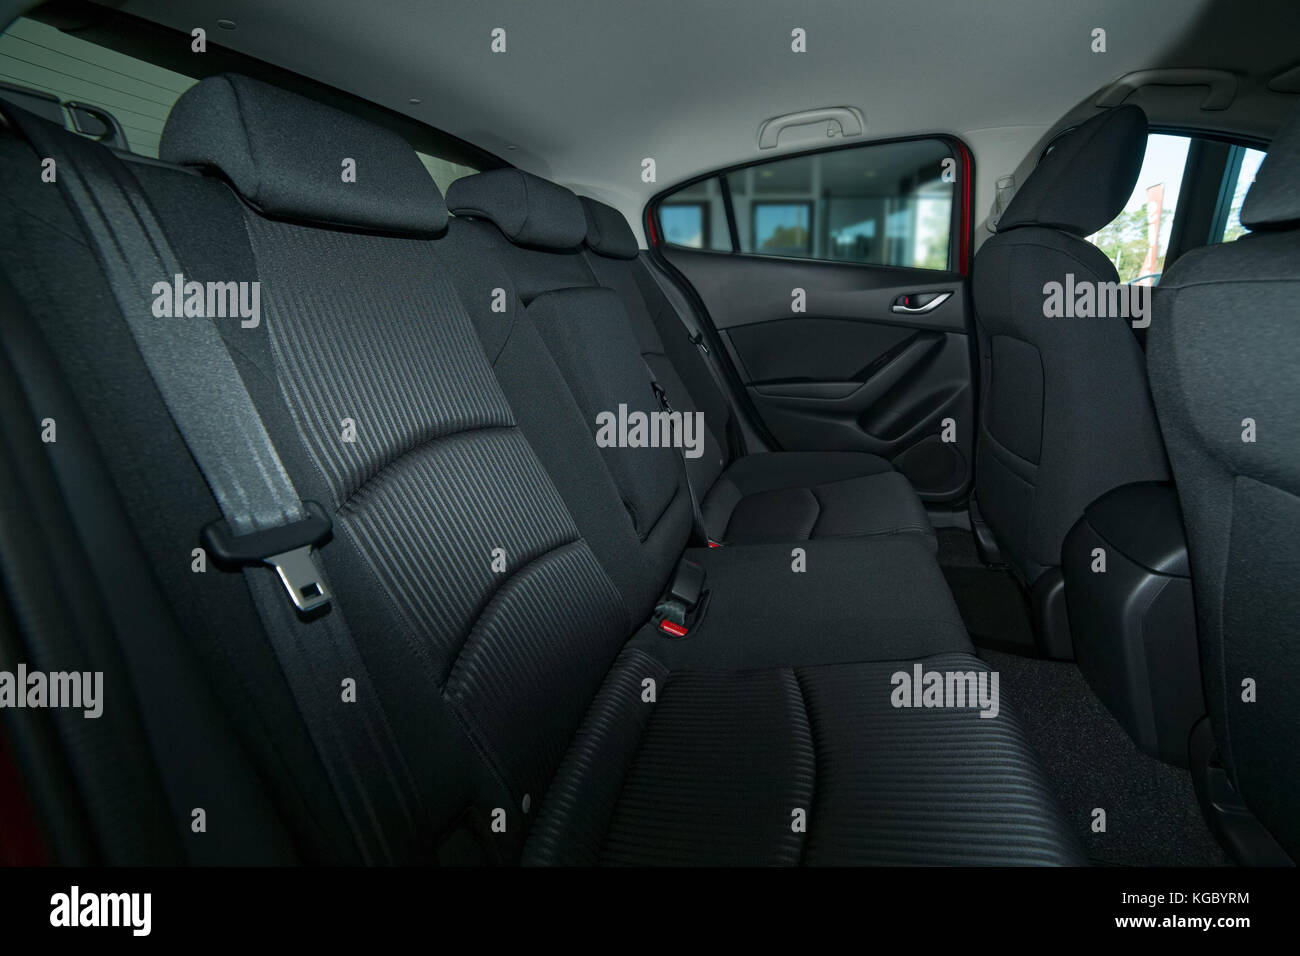 Modern car interior with back seat with seat belts, front seats and roof with a grab handle Stock Photo